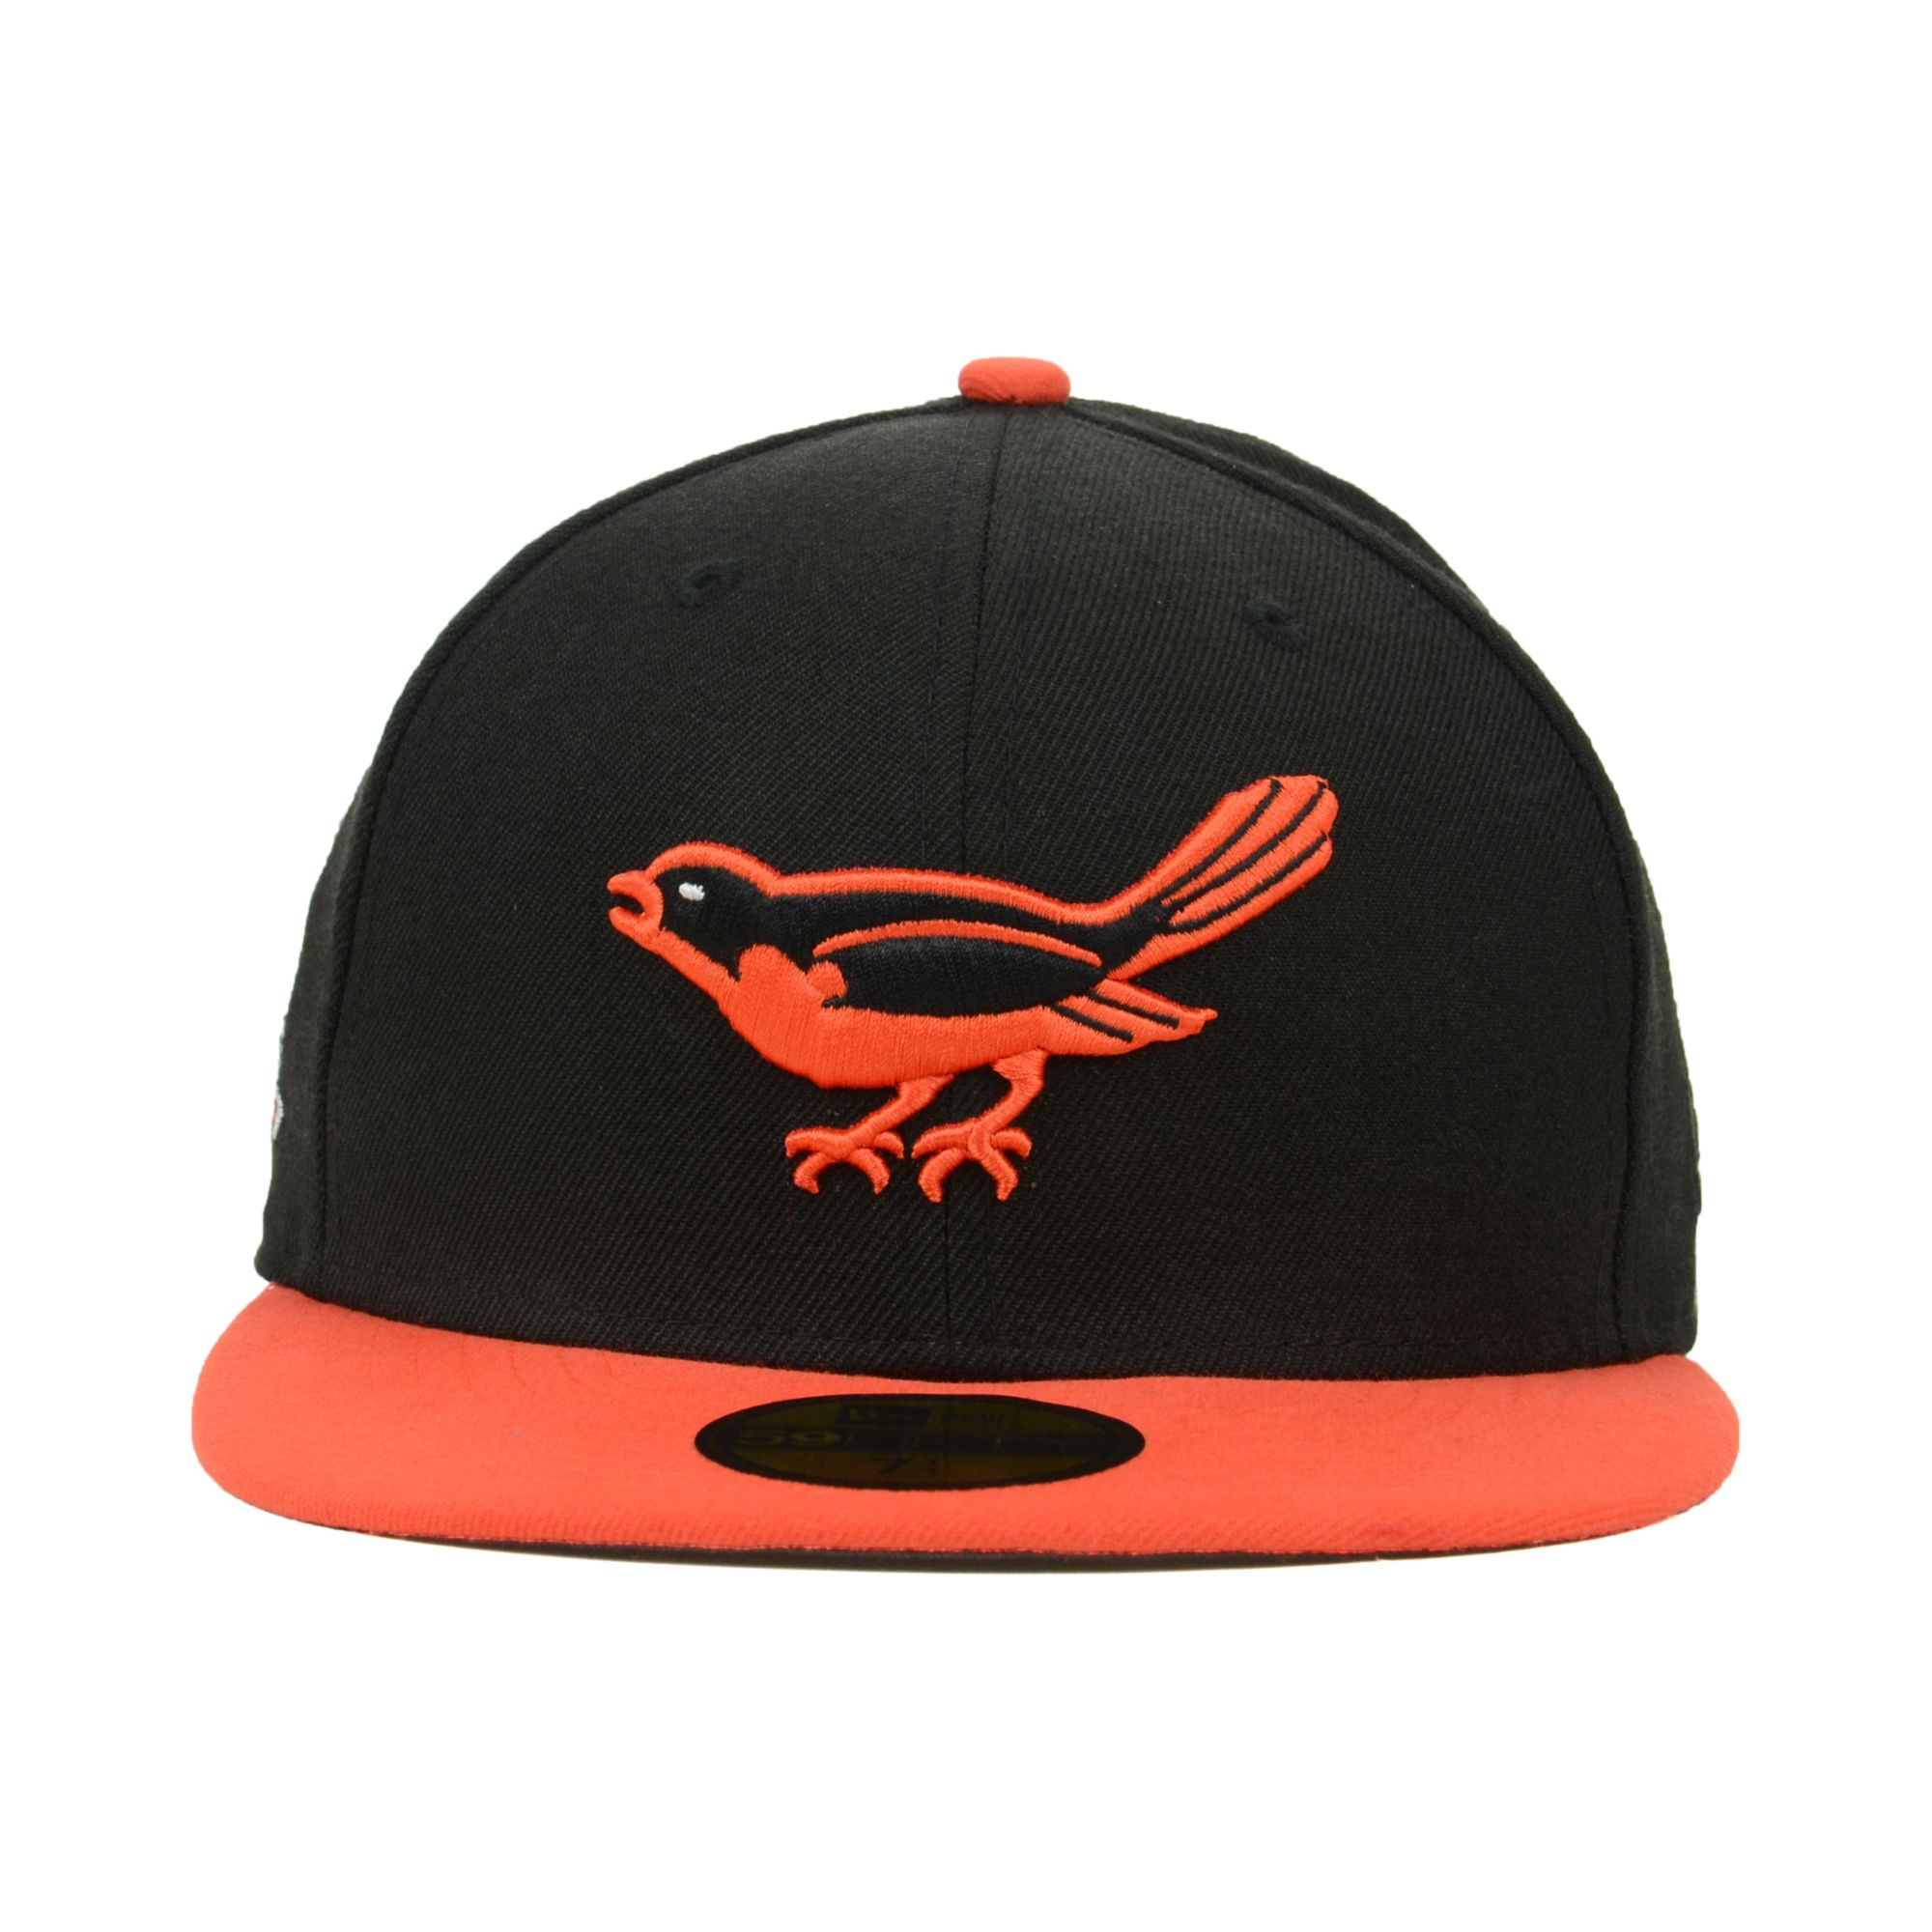 new style c50d4 858f2 ... shop lyst ktz baltimore orioles mlb all star patch redux 59fifty cap in  dc3c9 d9a6a